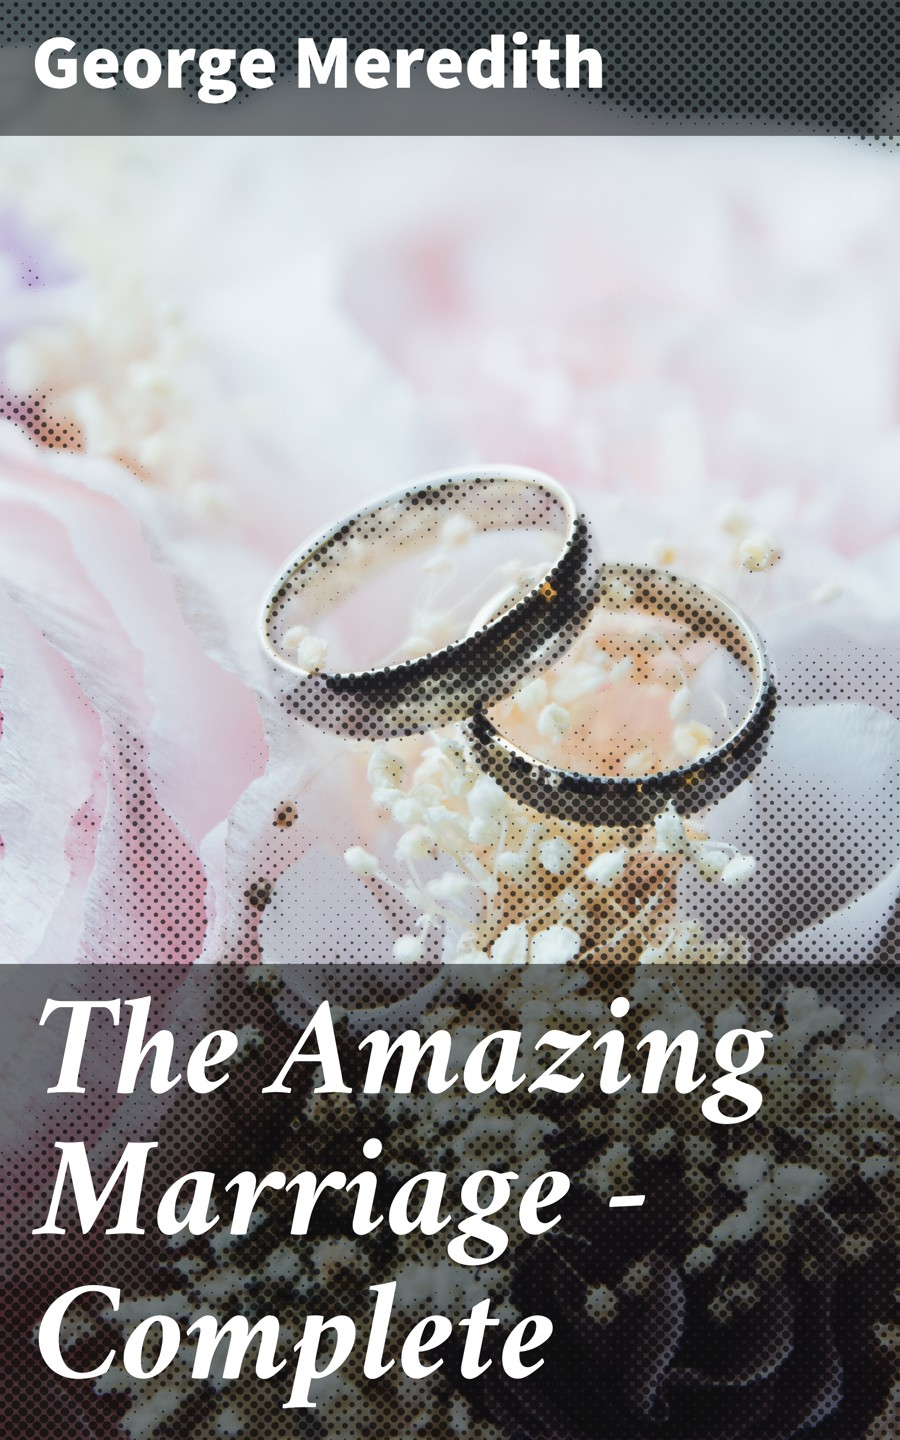 George Meredith The Amazing Marriage — Complete